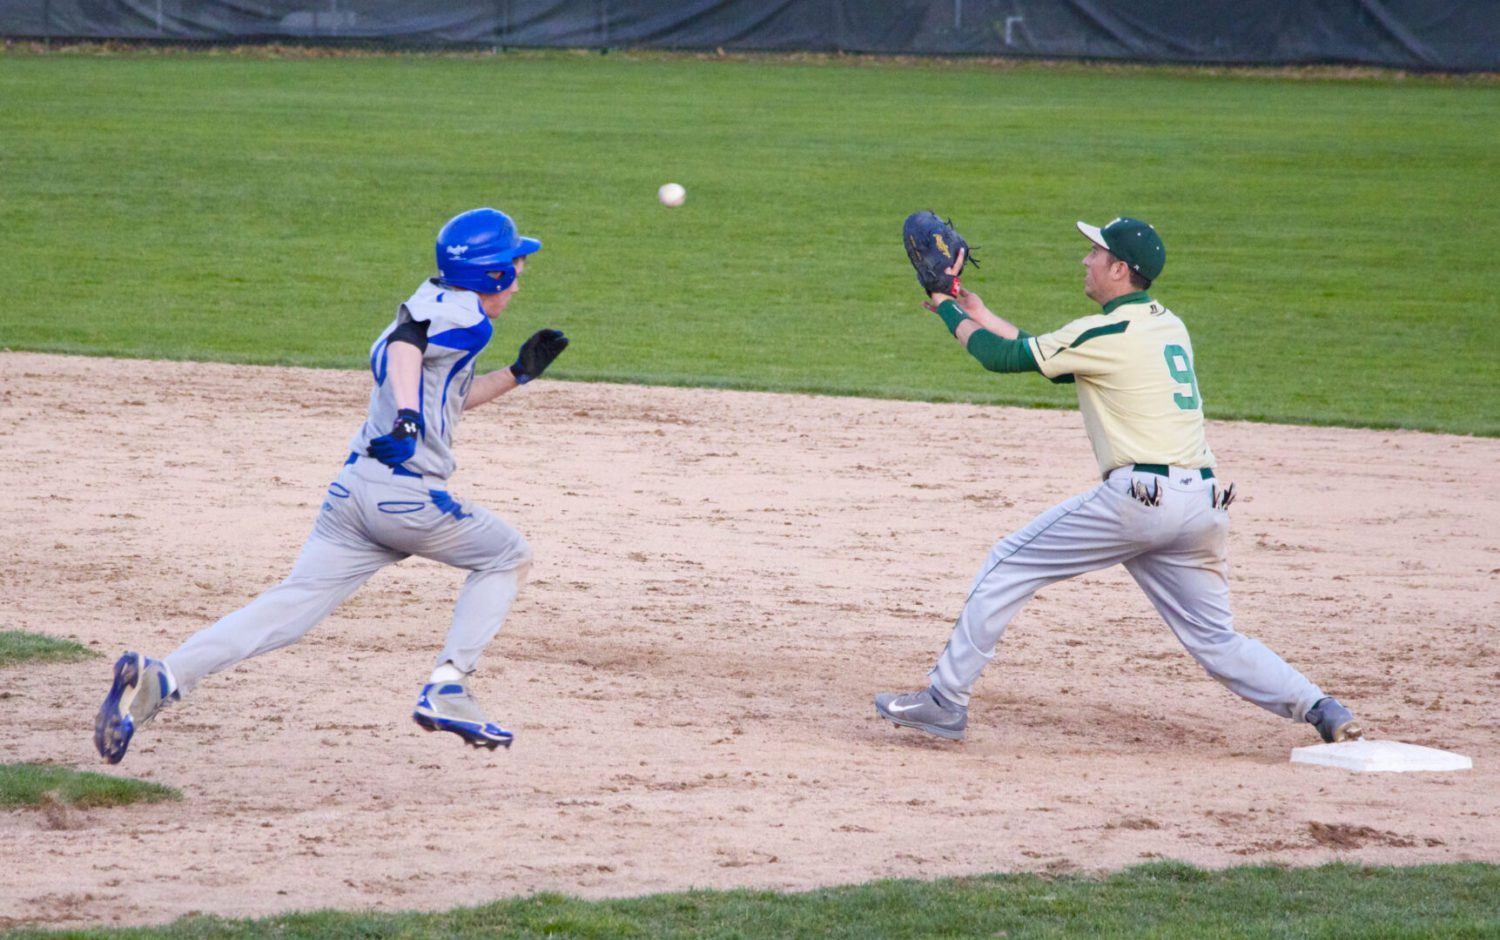 Montague baseball team rallies in the sixth to steal a 6-5 victory over North Muskegon, WM Christian tops Ravenna